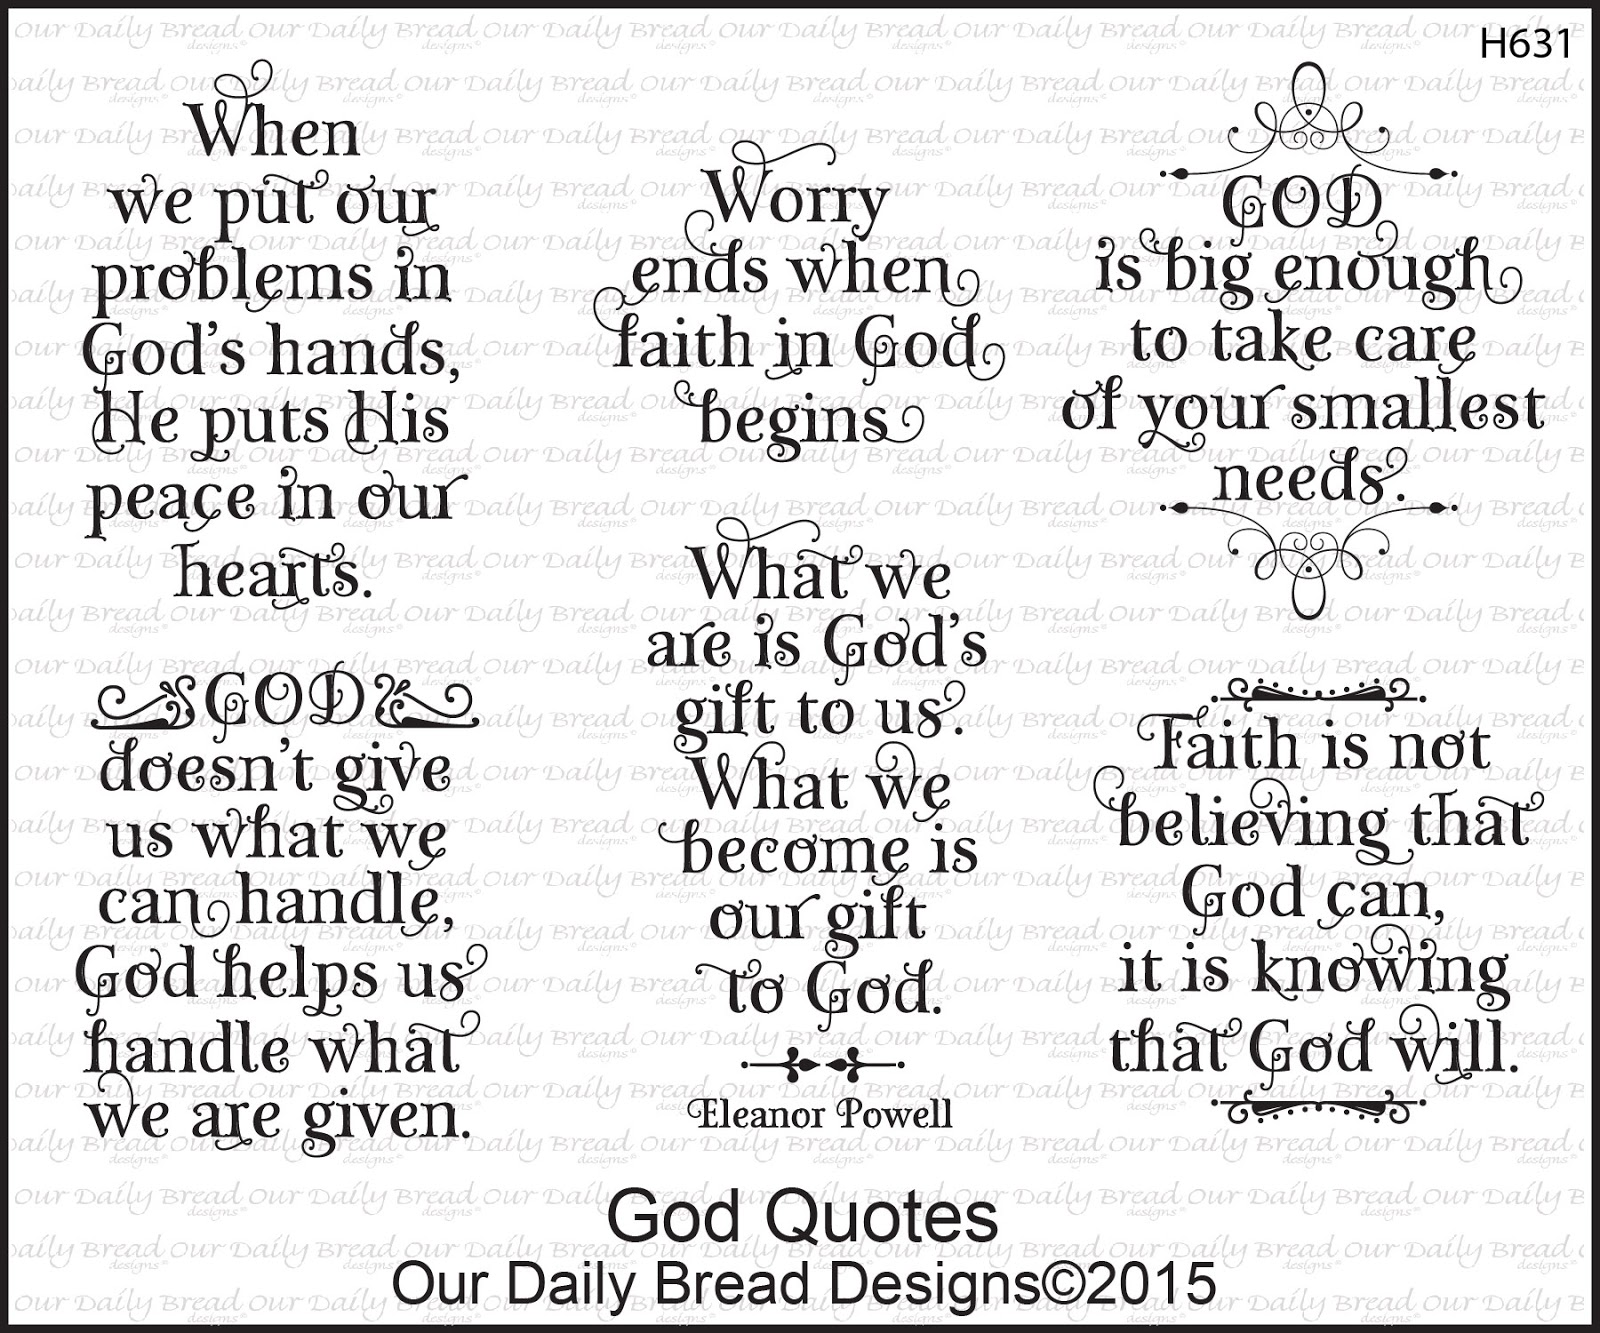 Stamps - Our Daily Bread Designs God Quotes